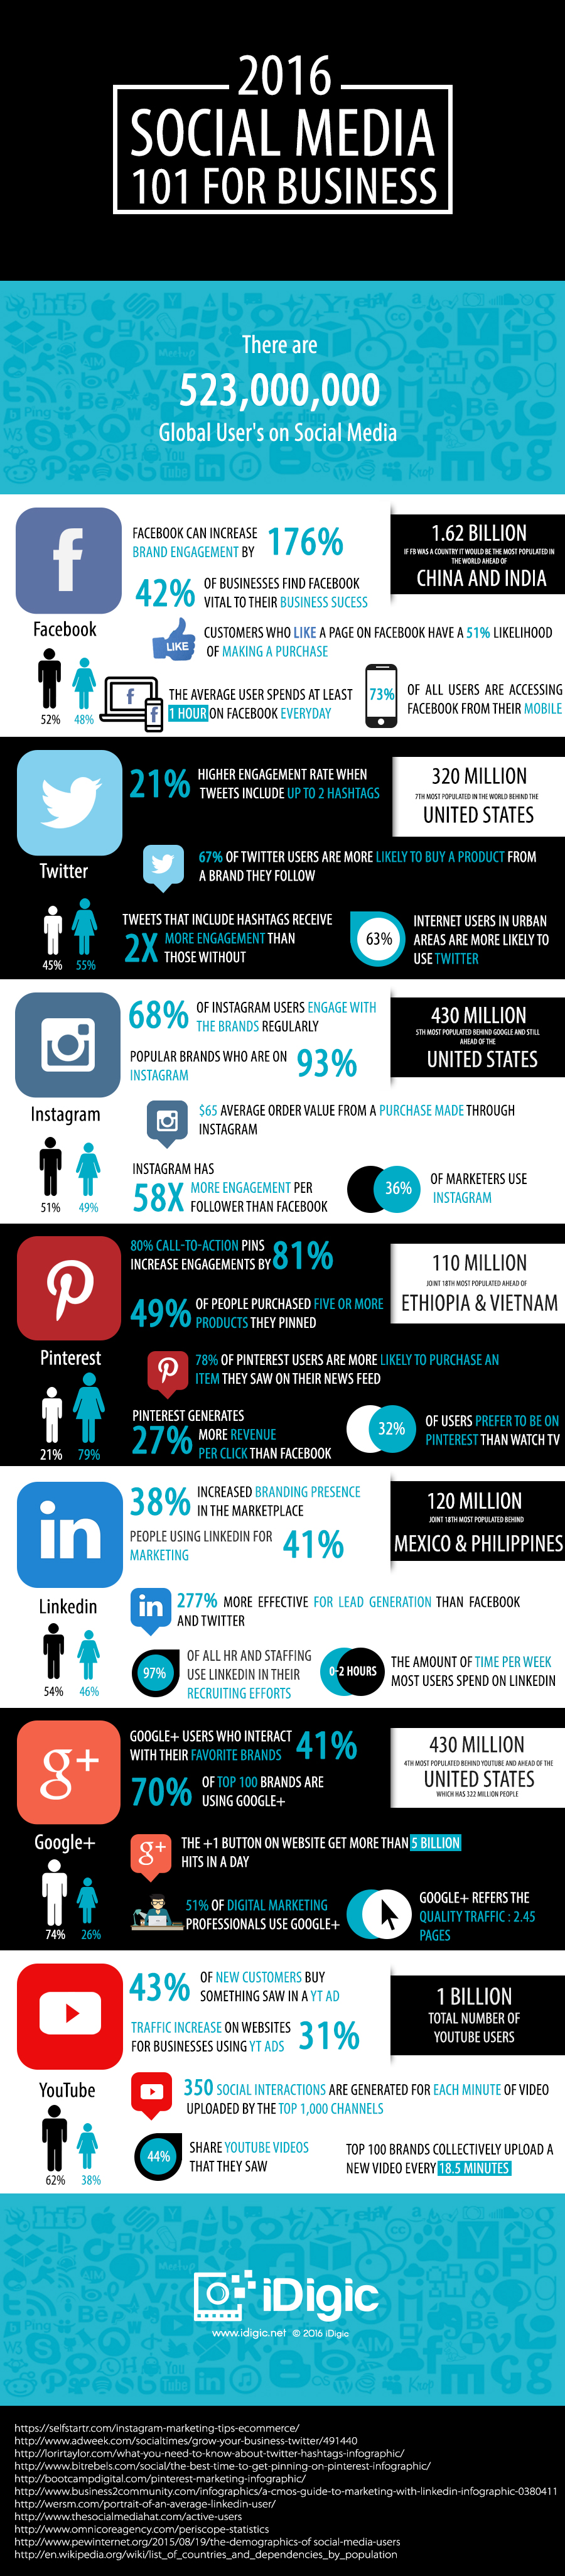 social-media-101-for-business-factosocial